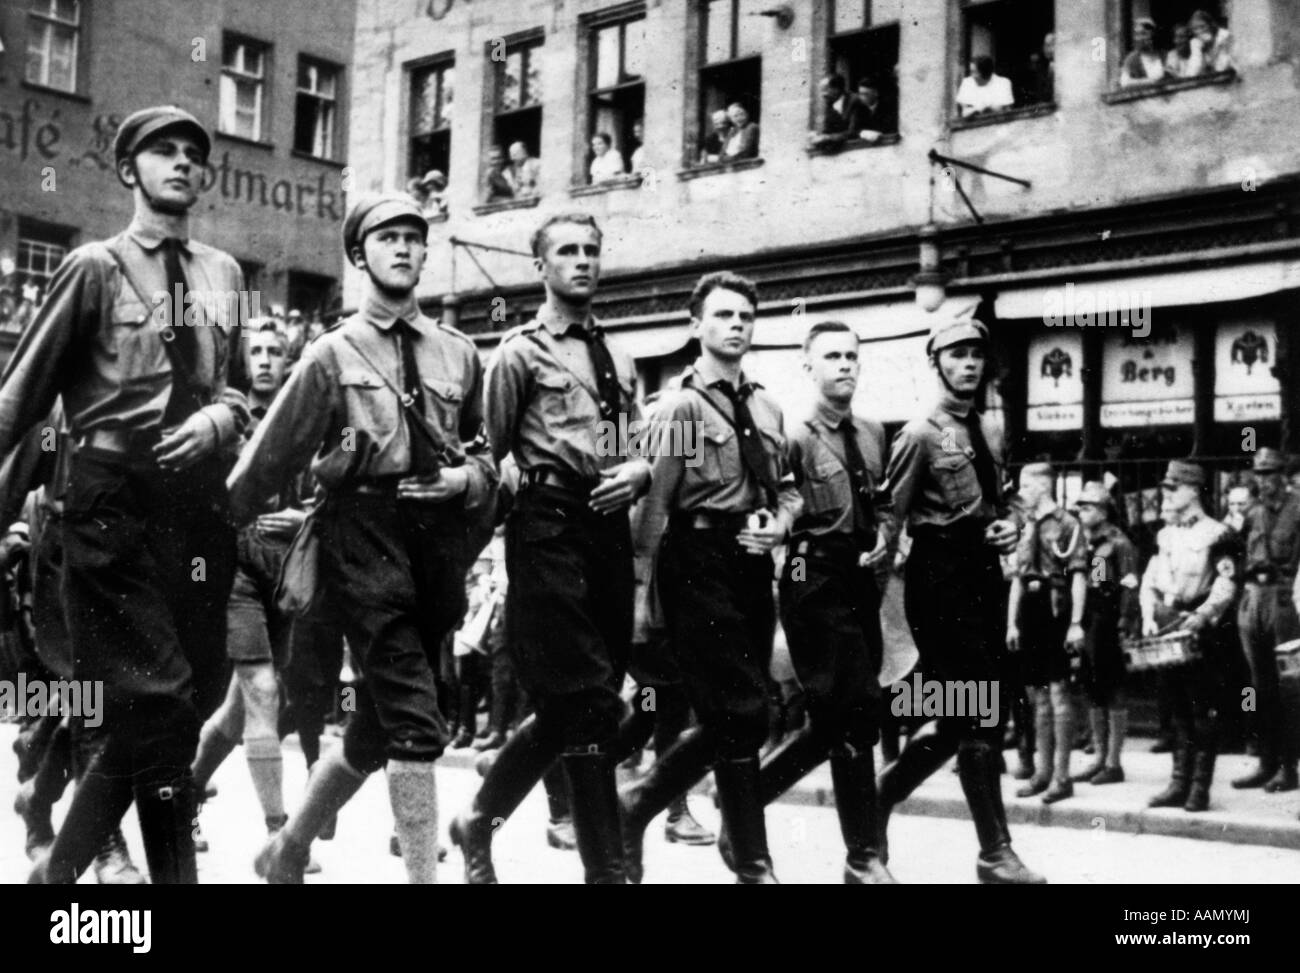 an analysis of german nazis of the 1930s and 1940s In the 1930s and 1940s, southern whites opposed the nazis in the 1930s and 1940s, southern whites who supported jim crow racism fervently opposed the nazi regime some nazi leaders were intrigued.